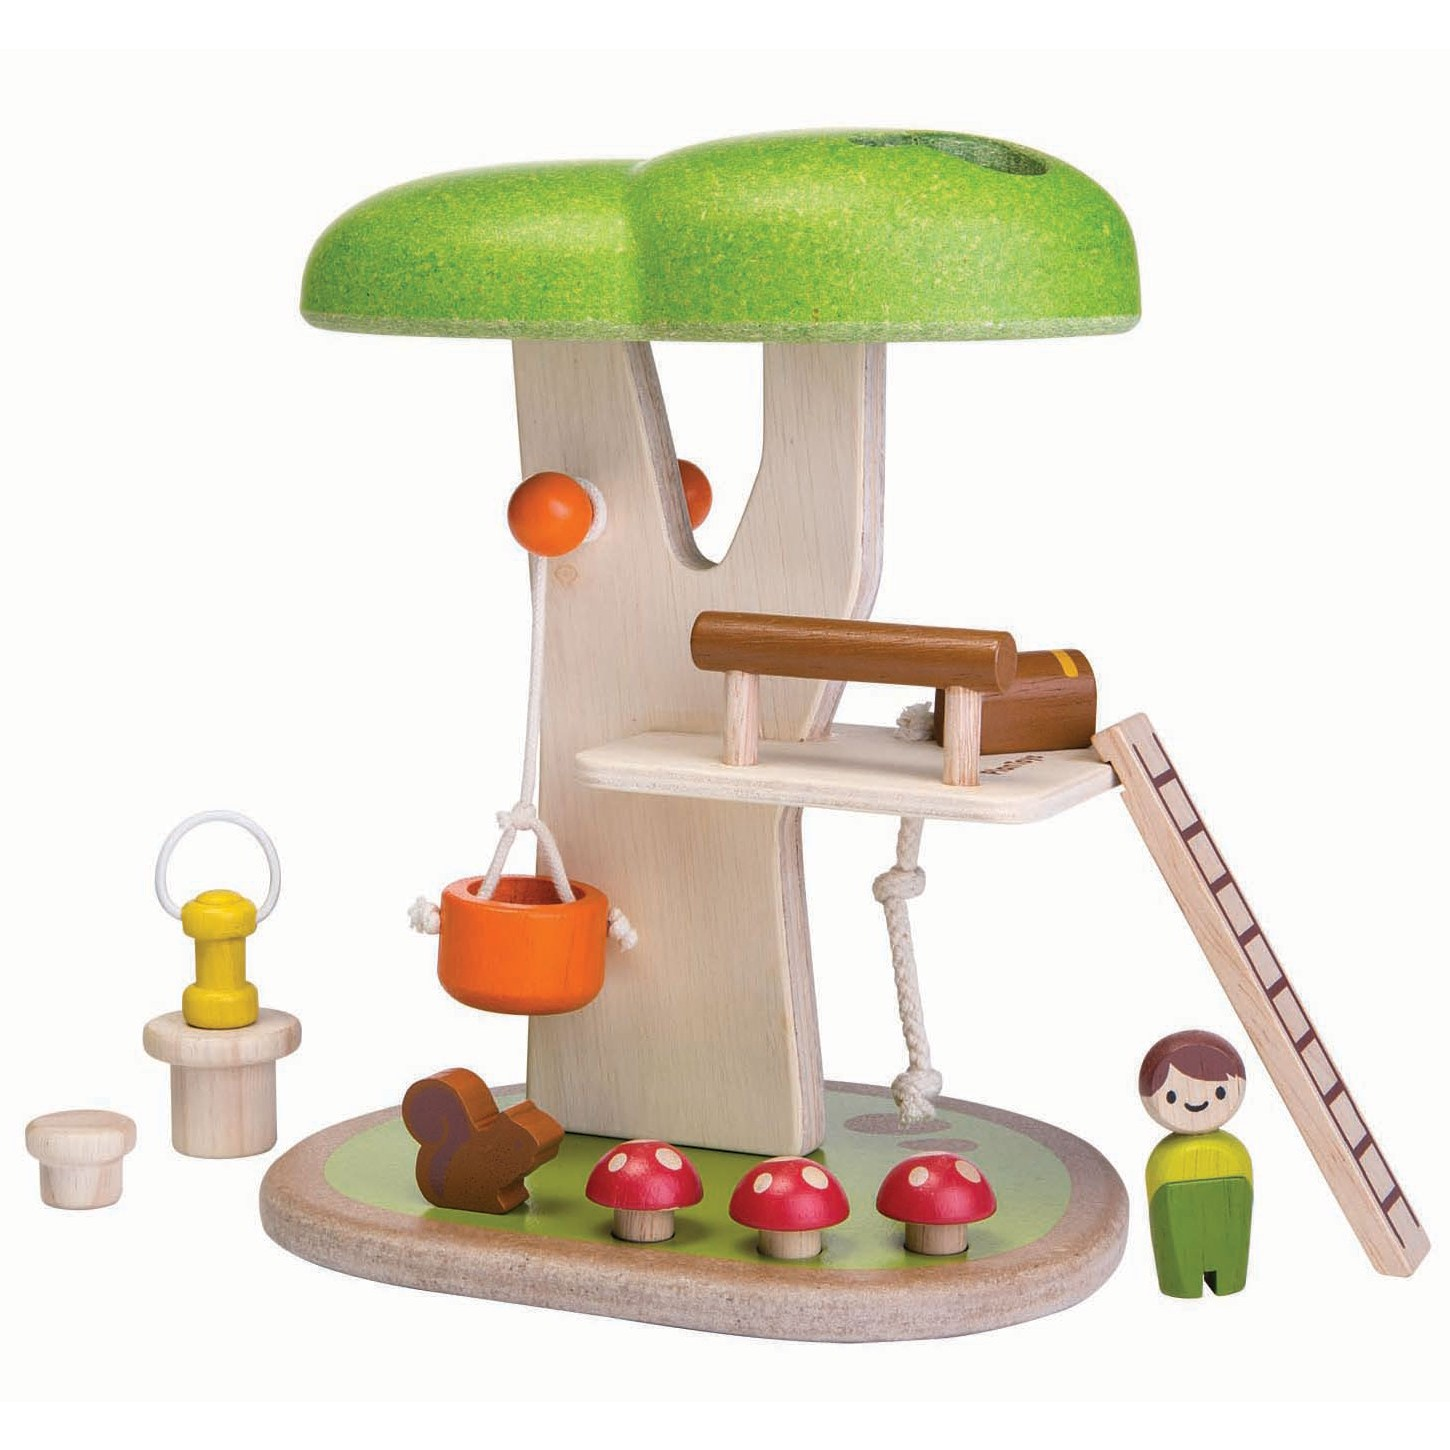 Plan Toys Tree House PlanWorld Toy Tree House Plans on wooden doll house plans, toy wood plans, toy dog house plans, toy school house plans, toy boat plans, toy castle plans, deck plans, toy wooden tree houses, toy dollhouse furniture, tiny house plans, toy kitchen plans, wooden toy airplane plans, toy train plans,